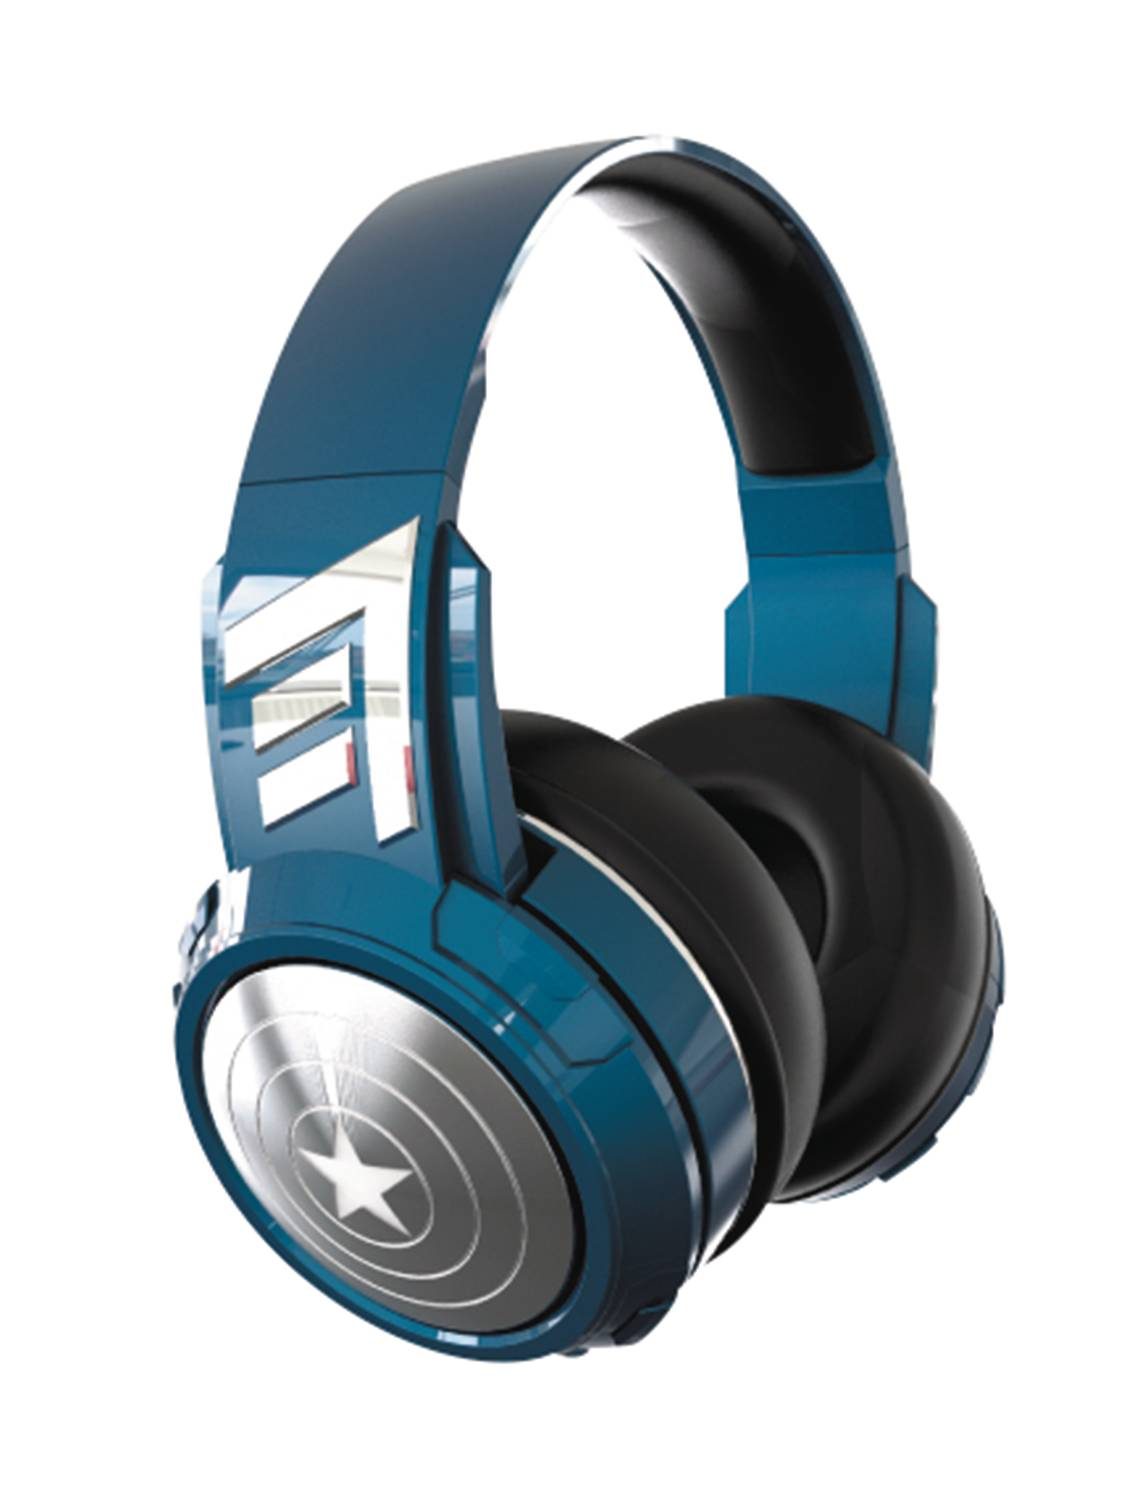 Captain America: Civil War Captain America Bluetooth Headphones